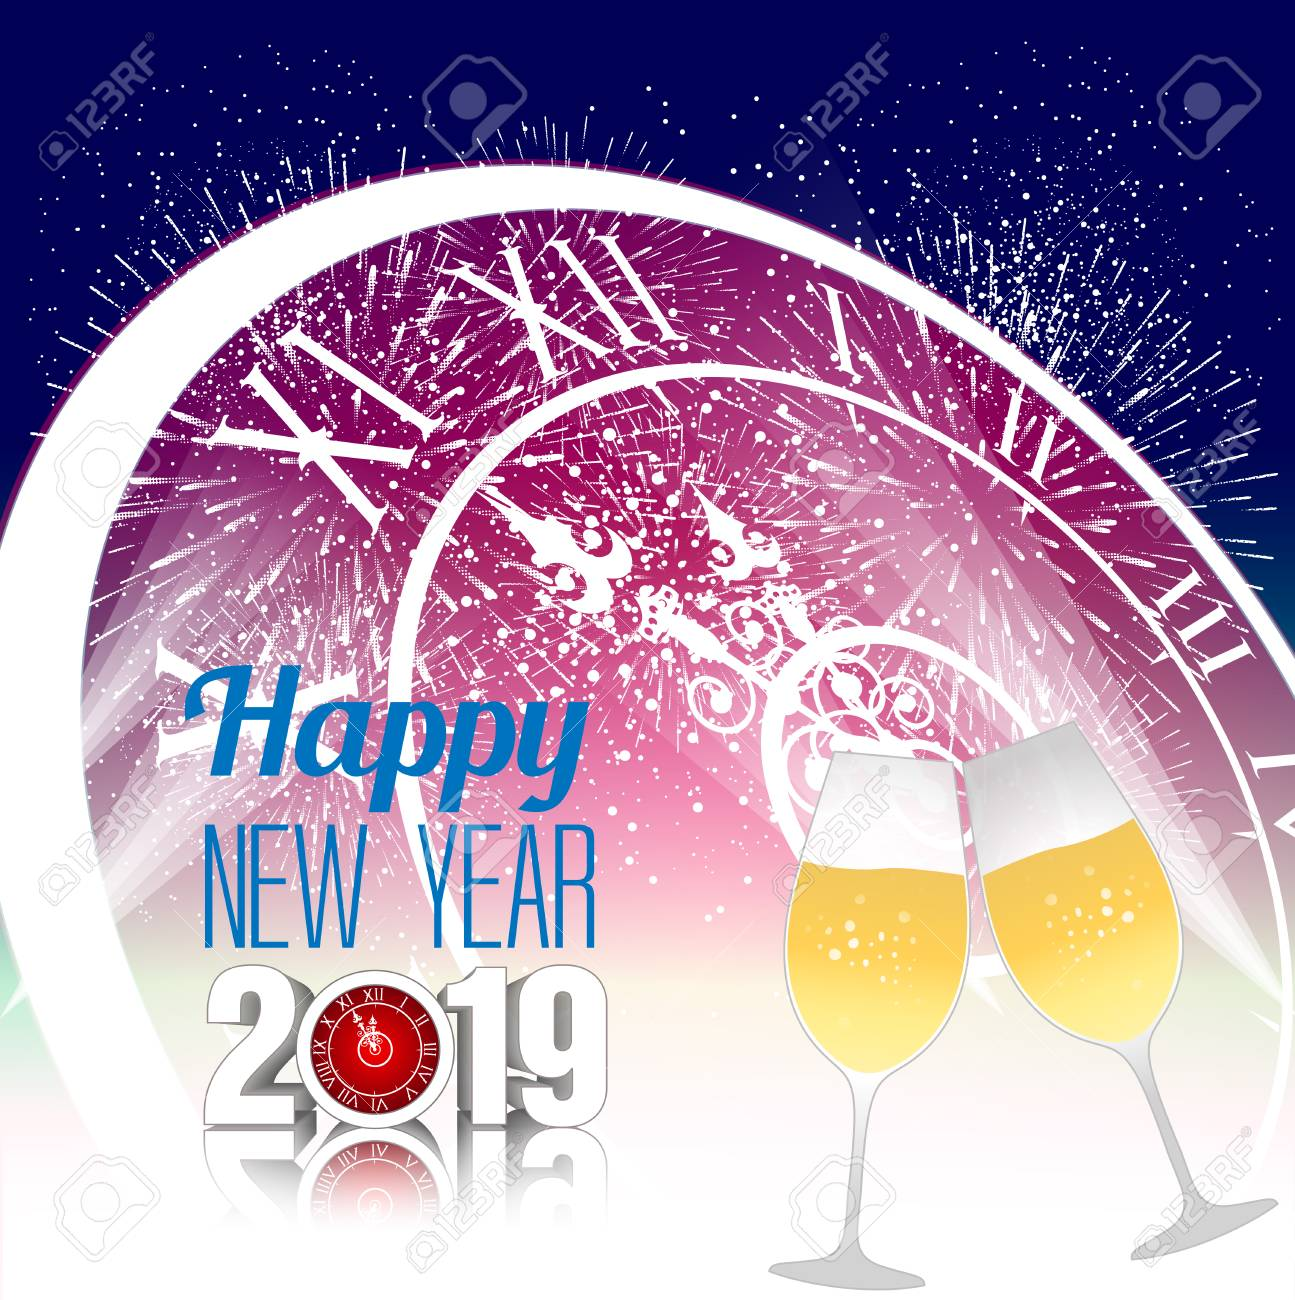 happy new year 2019 template vector illustration with champagne glasses stock vector 98015167